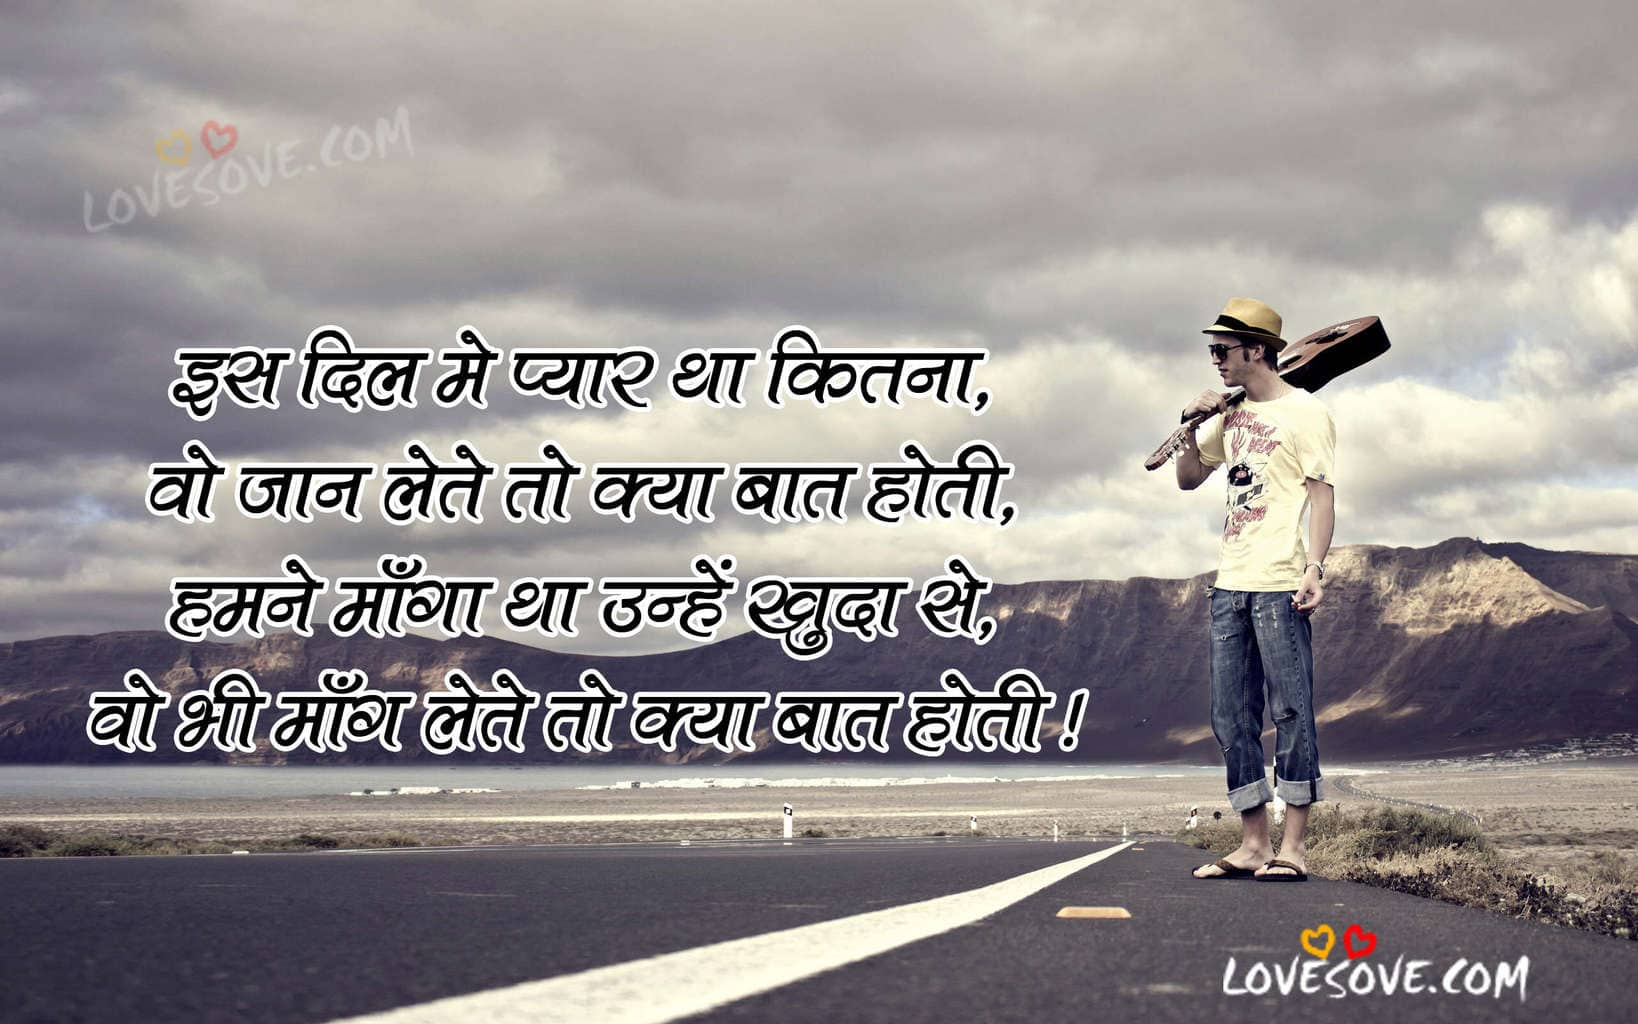 Heart Touching Love Shayari, Hindi Font Love Quotes